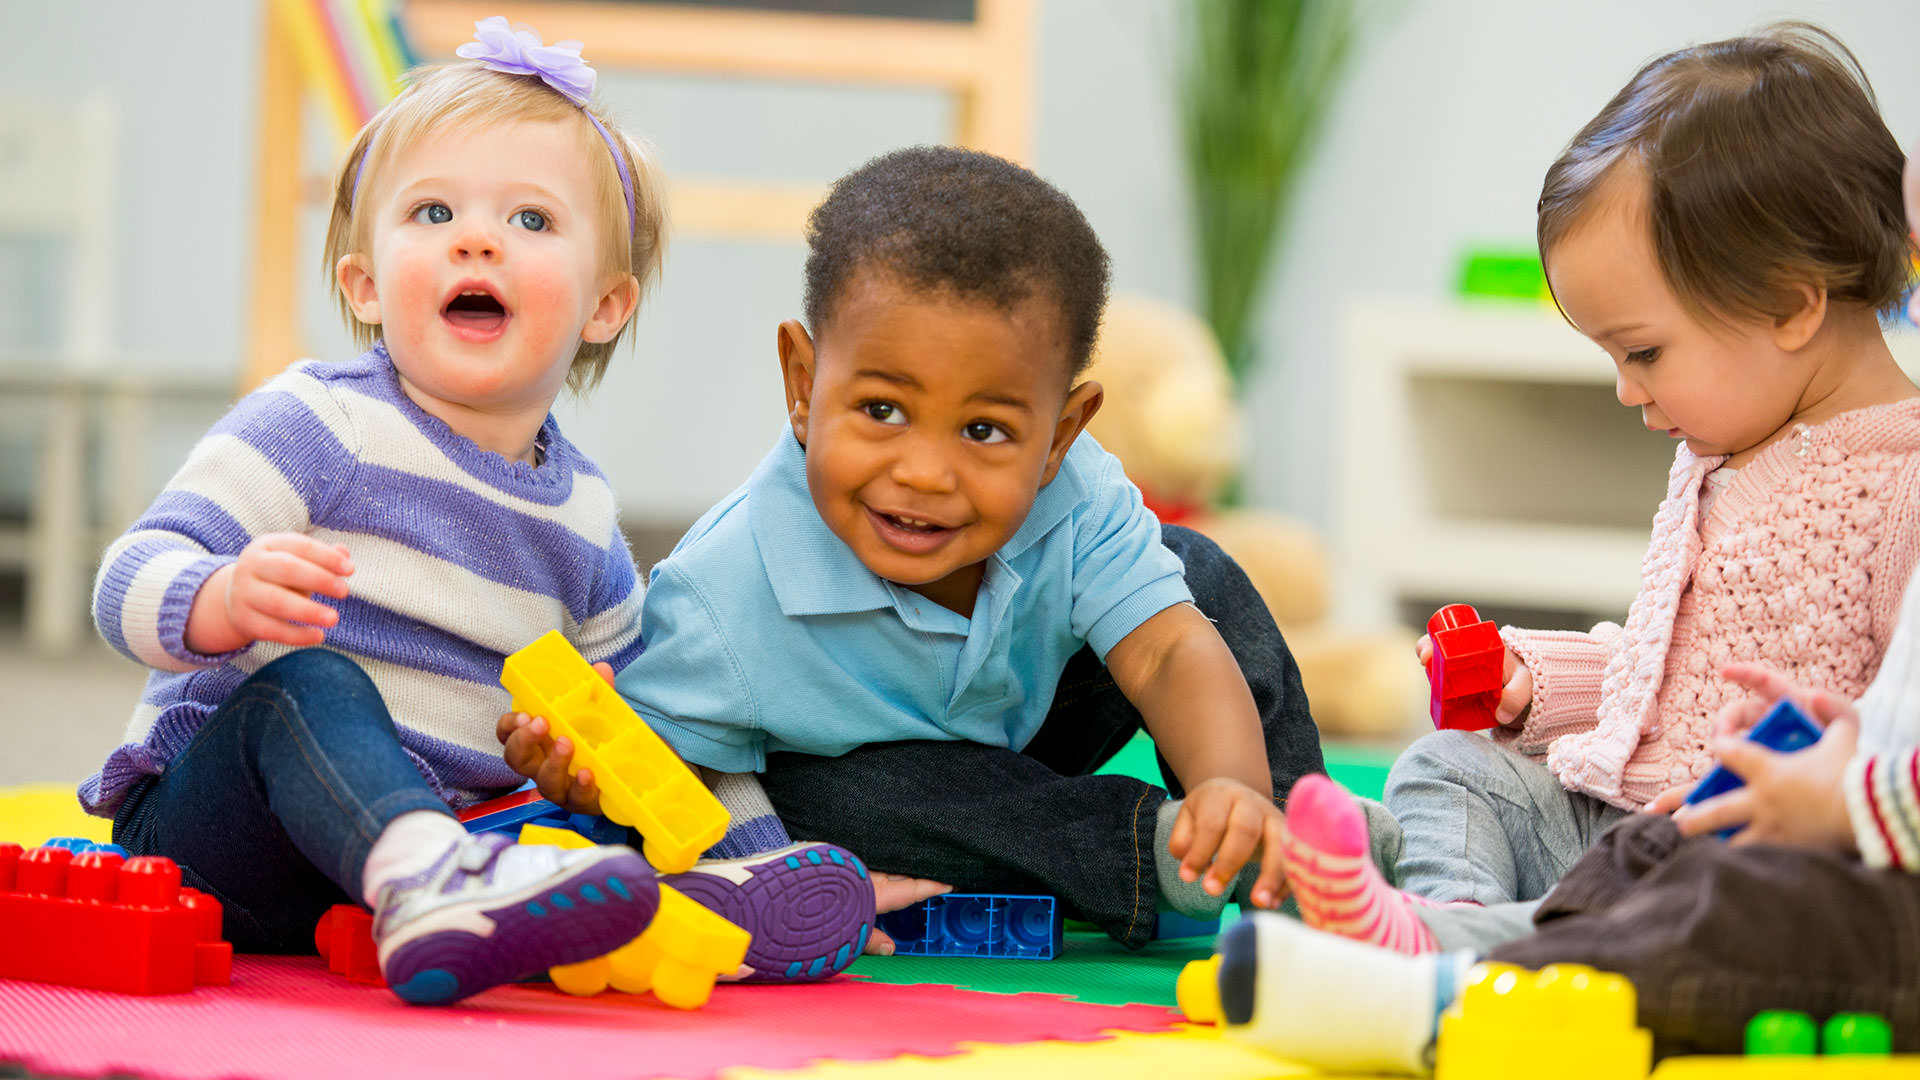 POSITIVE YOUTH DEVELOPMENT IN YOUNG CHILDREN